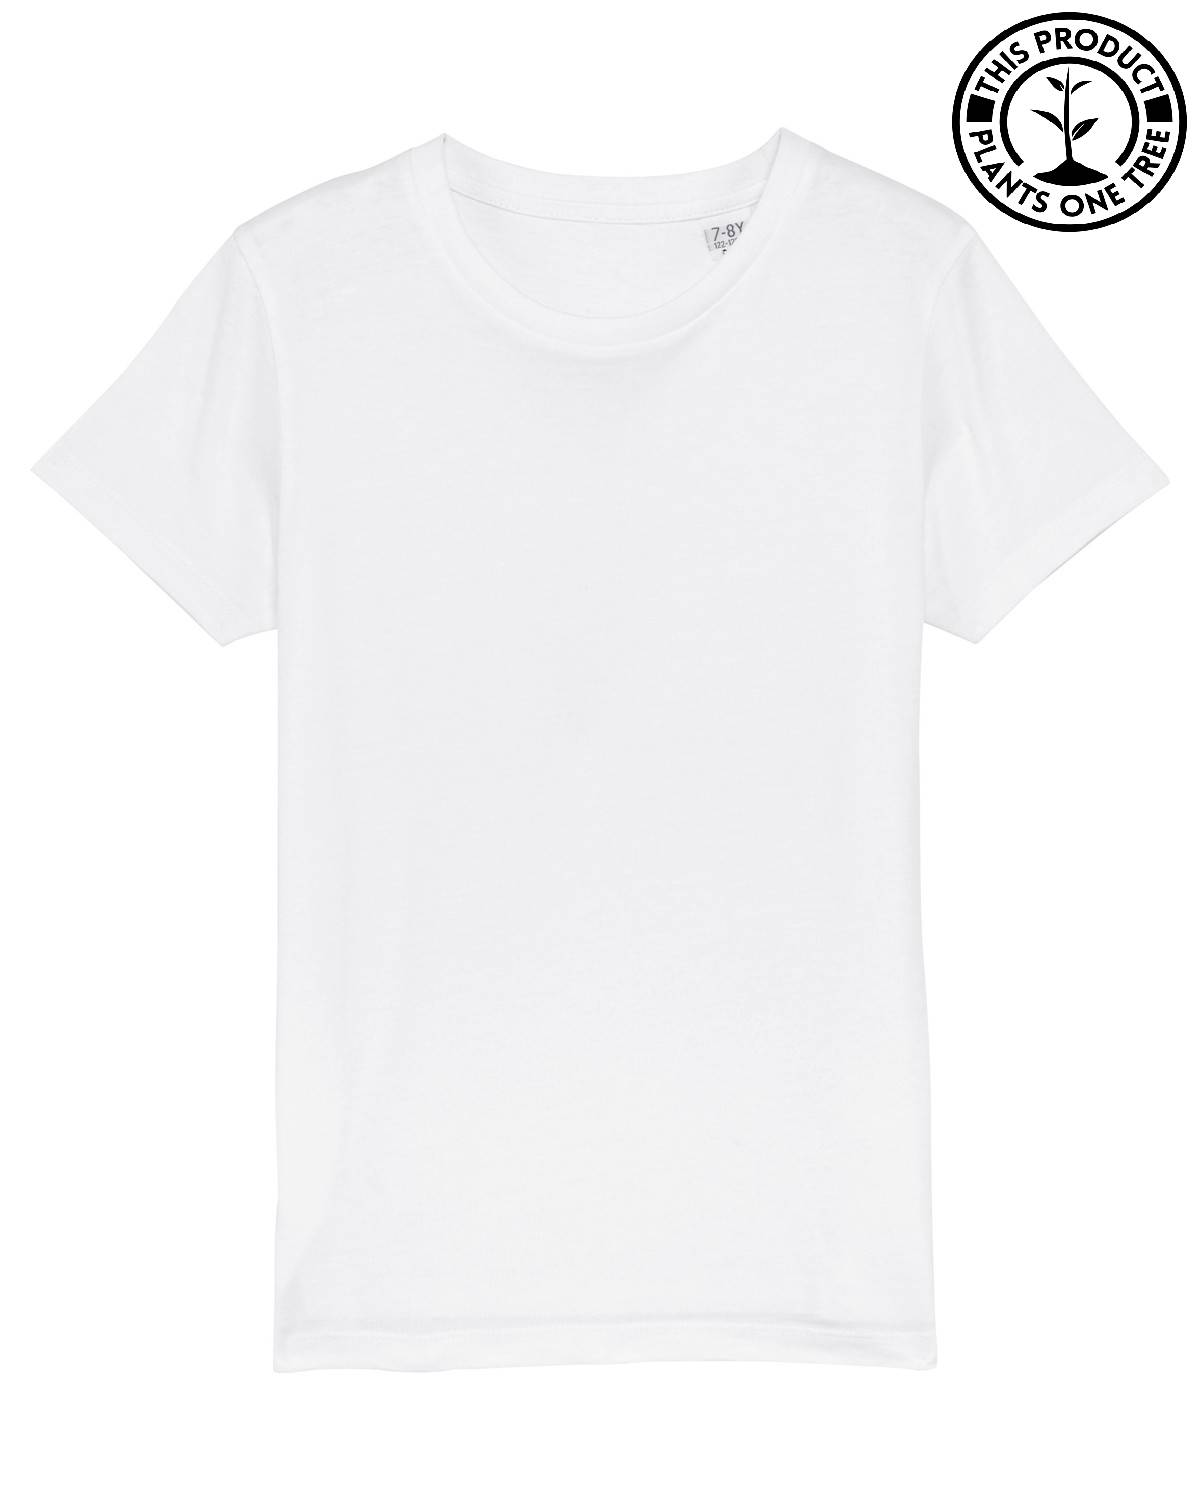 Kids Basic Unisex T-shirt White